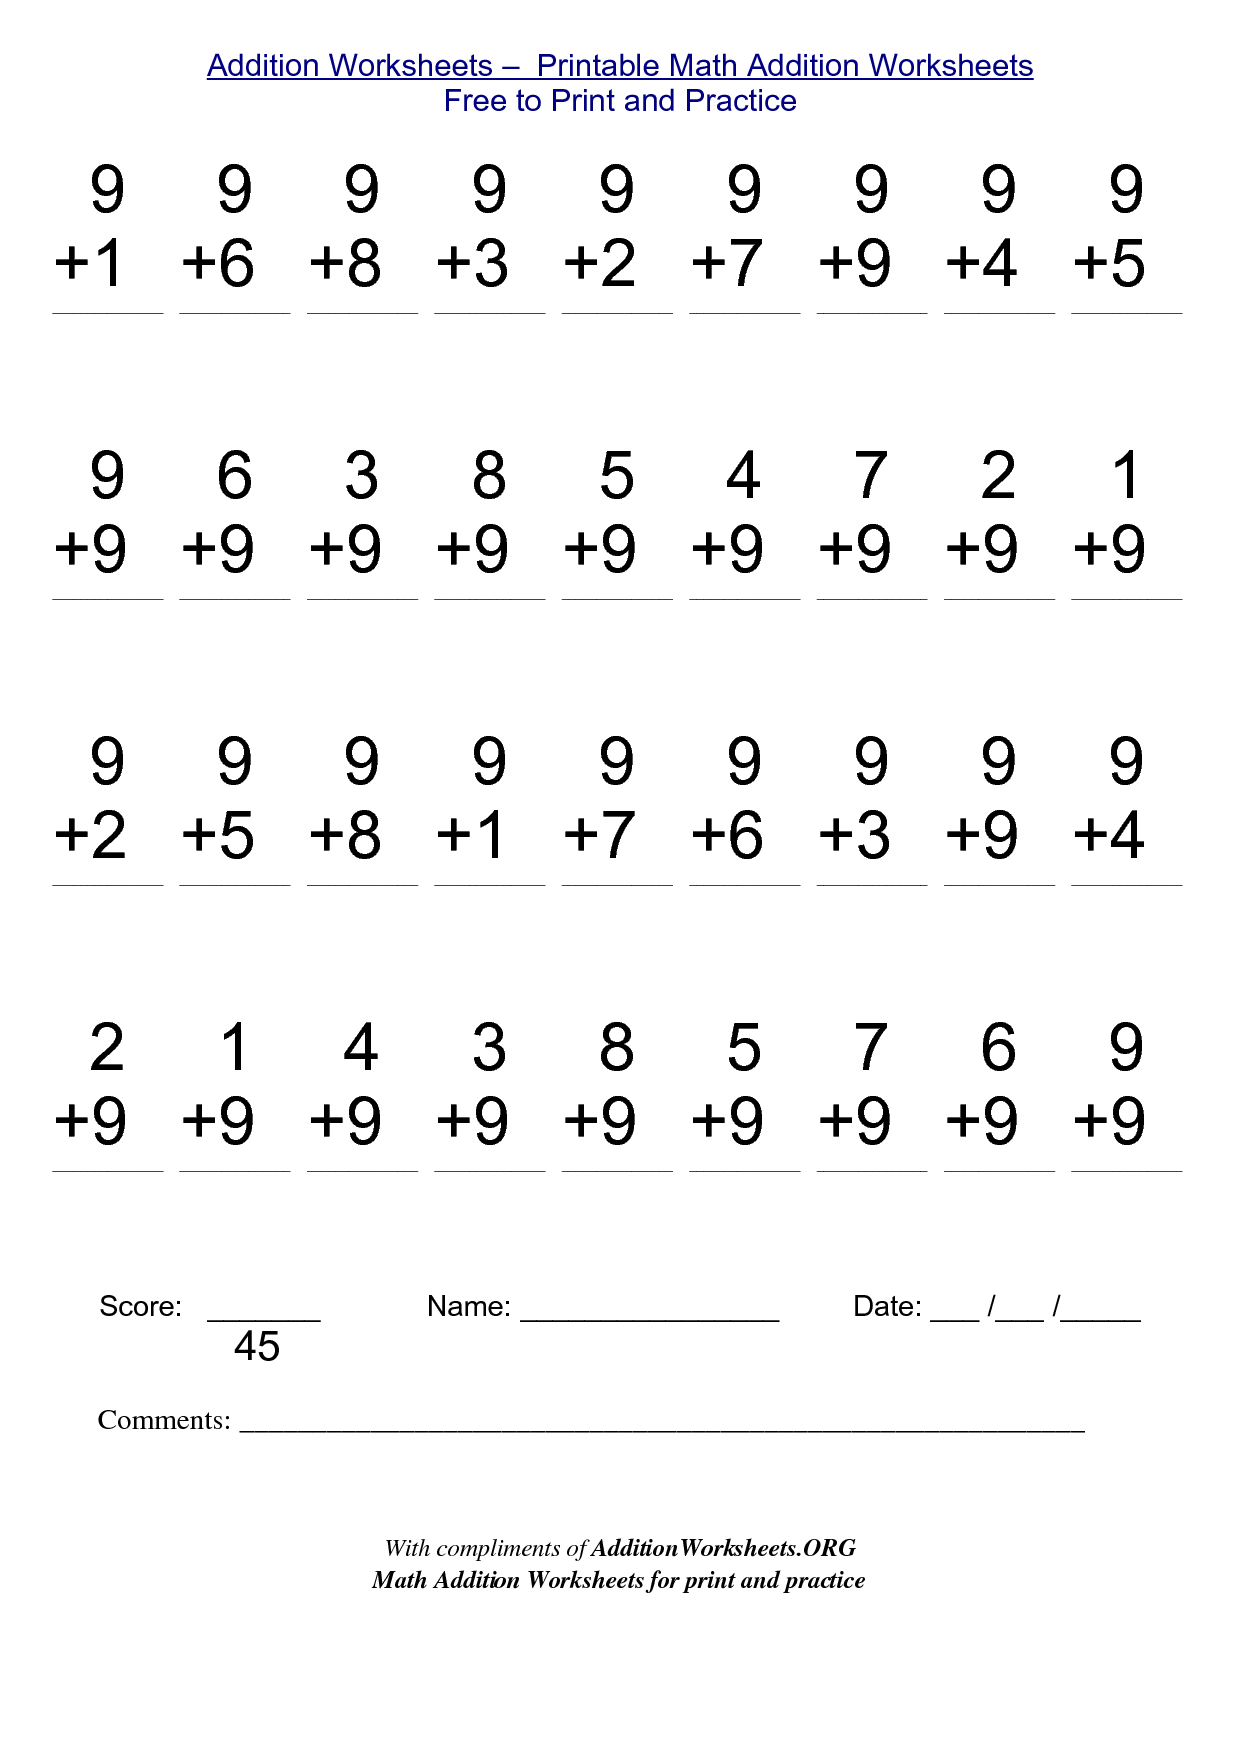 2nd grade stuff to print | Addition Worksheets - Printable Math Addition Worksheets Free to Print